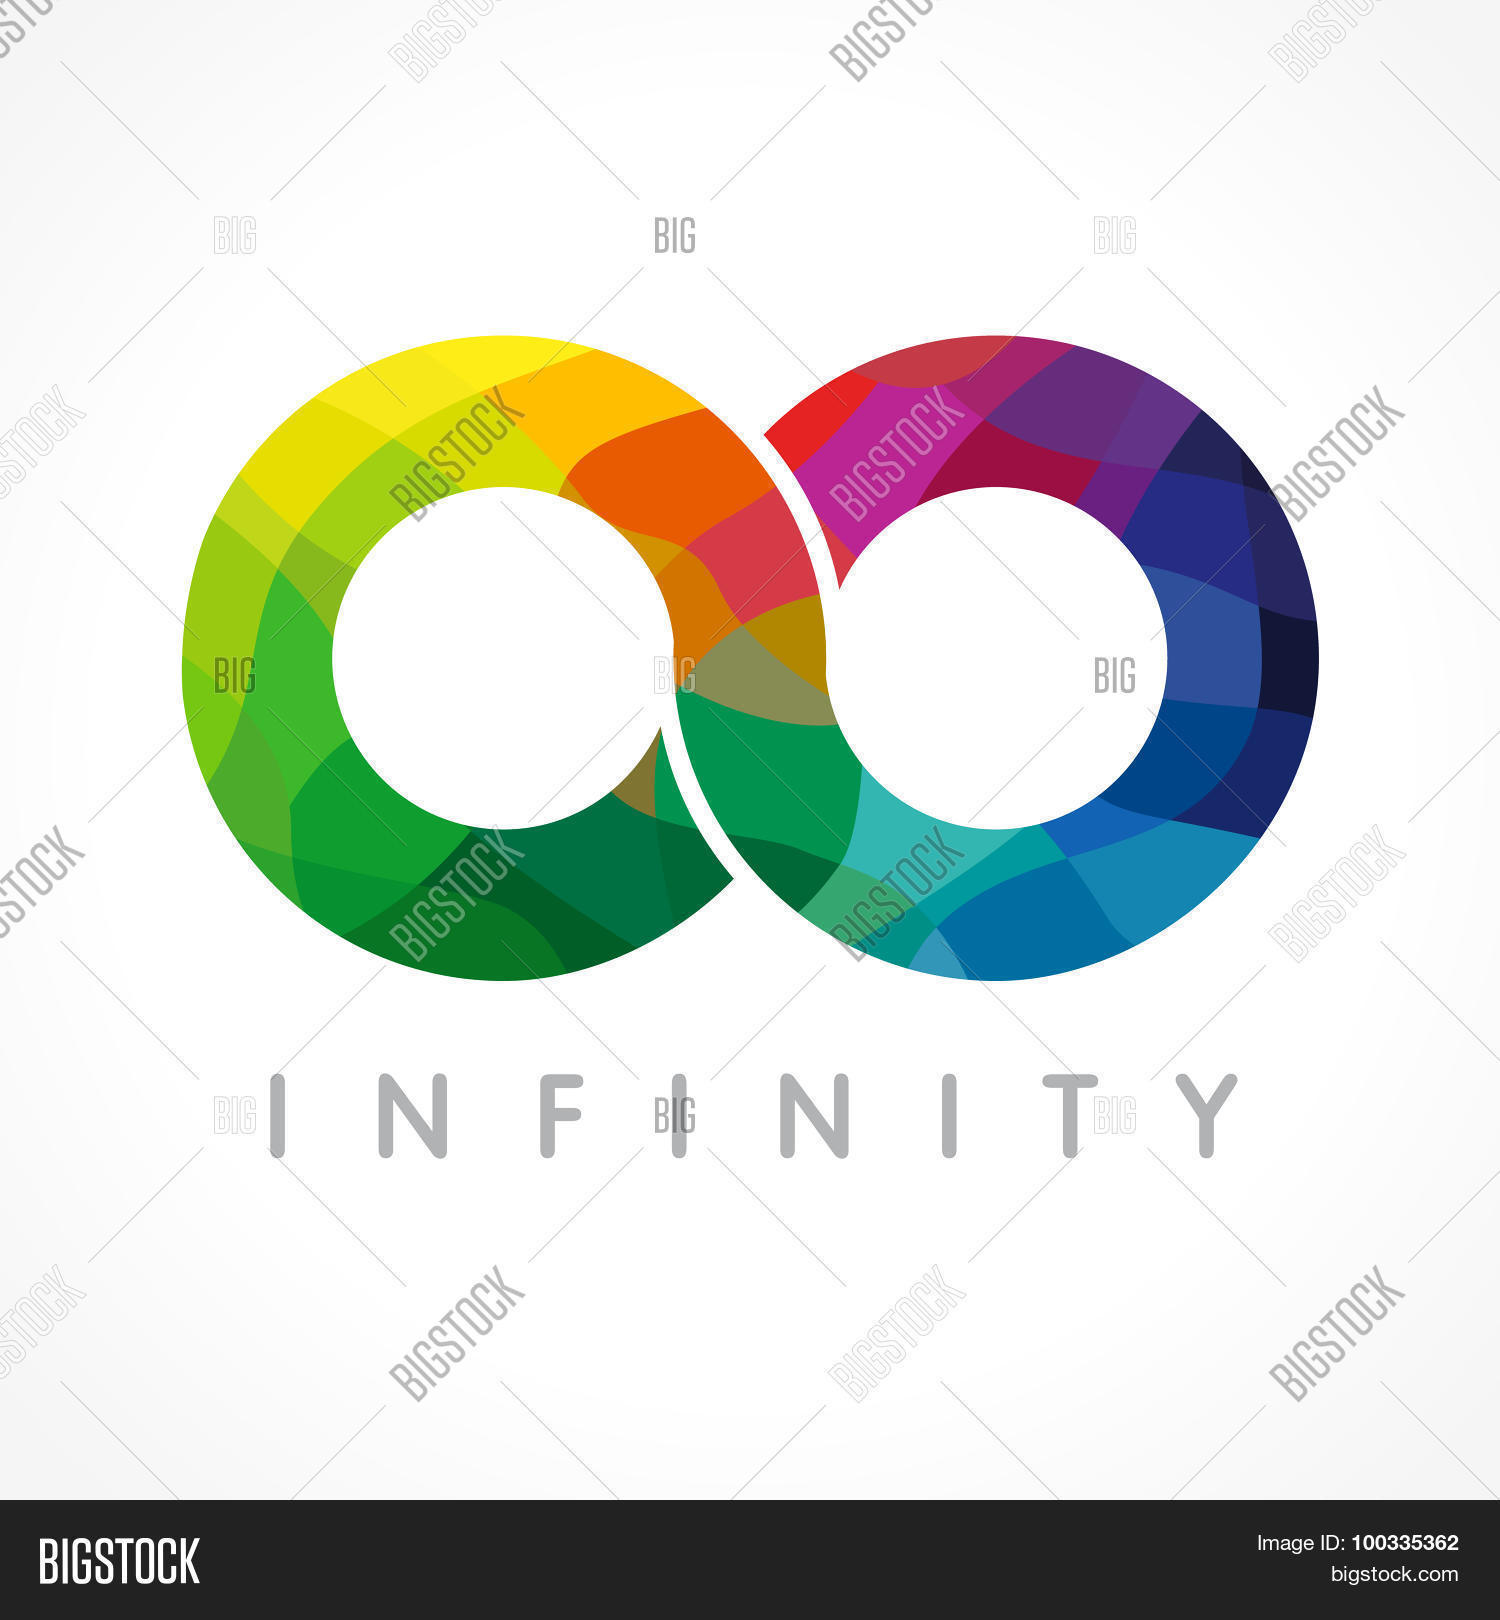 Infinity colored logo. Stained-glass graphics infinite vector template brand sign in various colors. Infinit staned symbol of constancy or number 0 with mosaic element. Creative, bright eyeglasses shape.